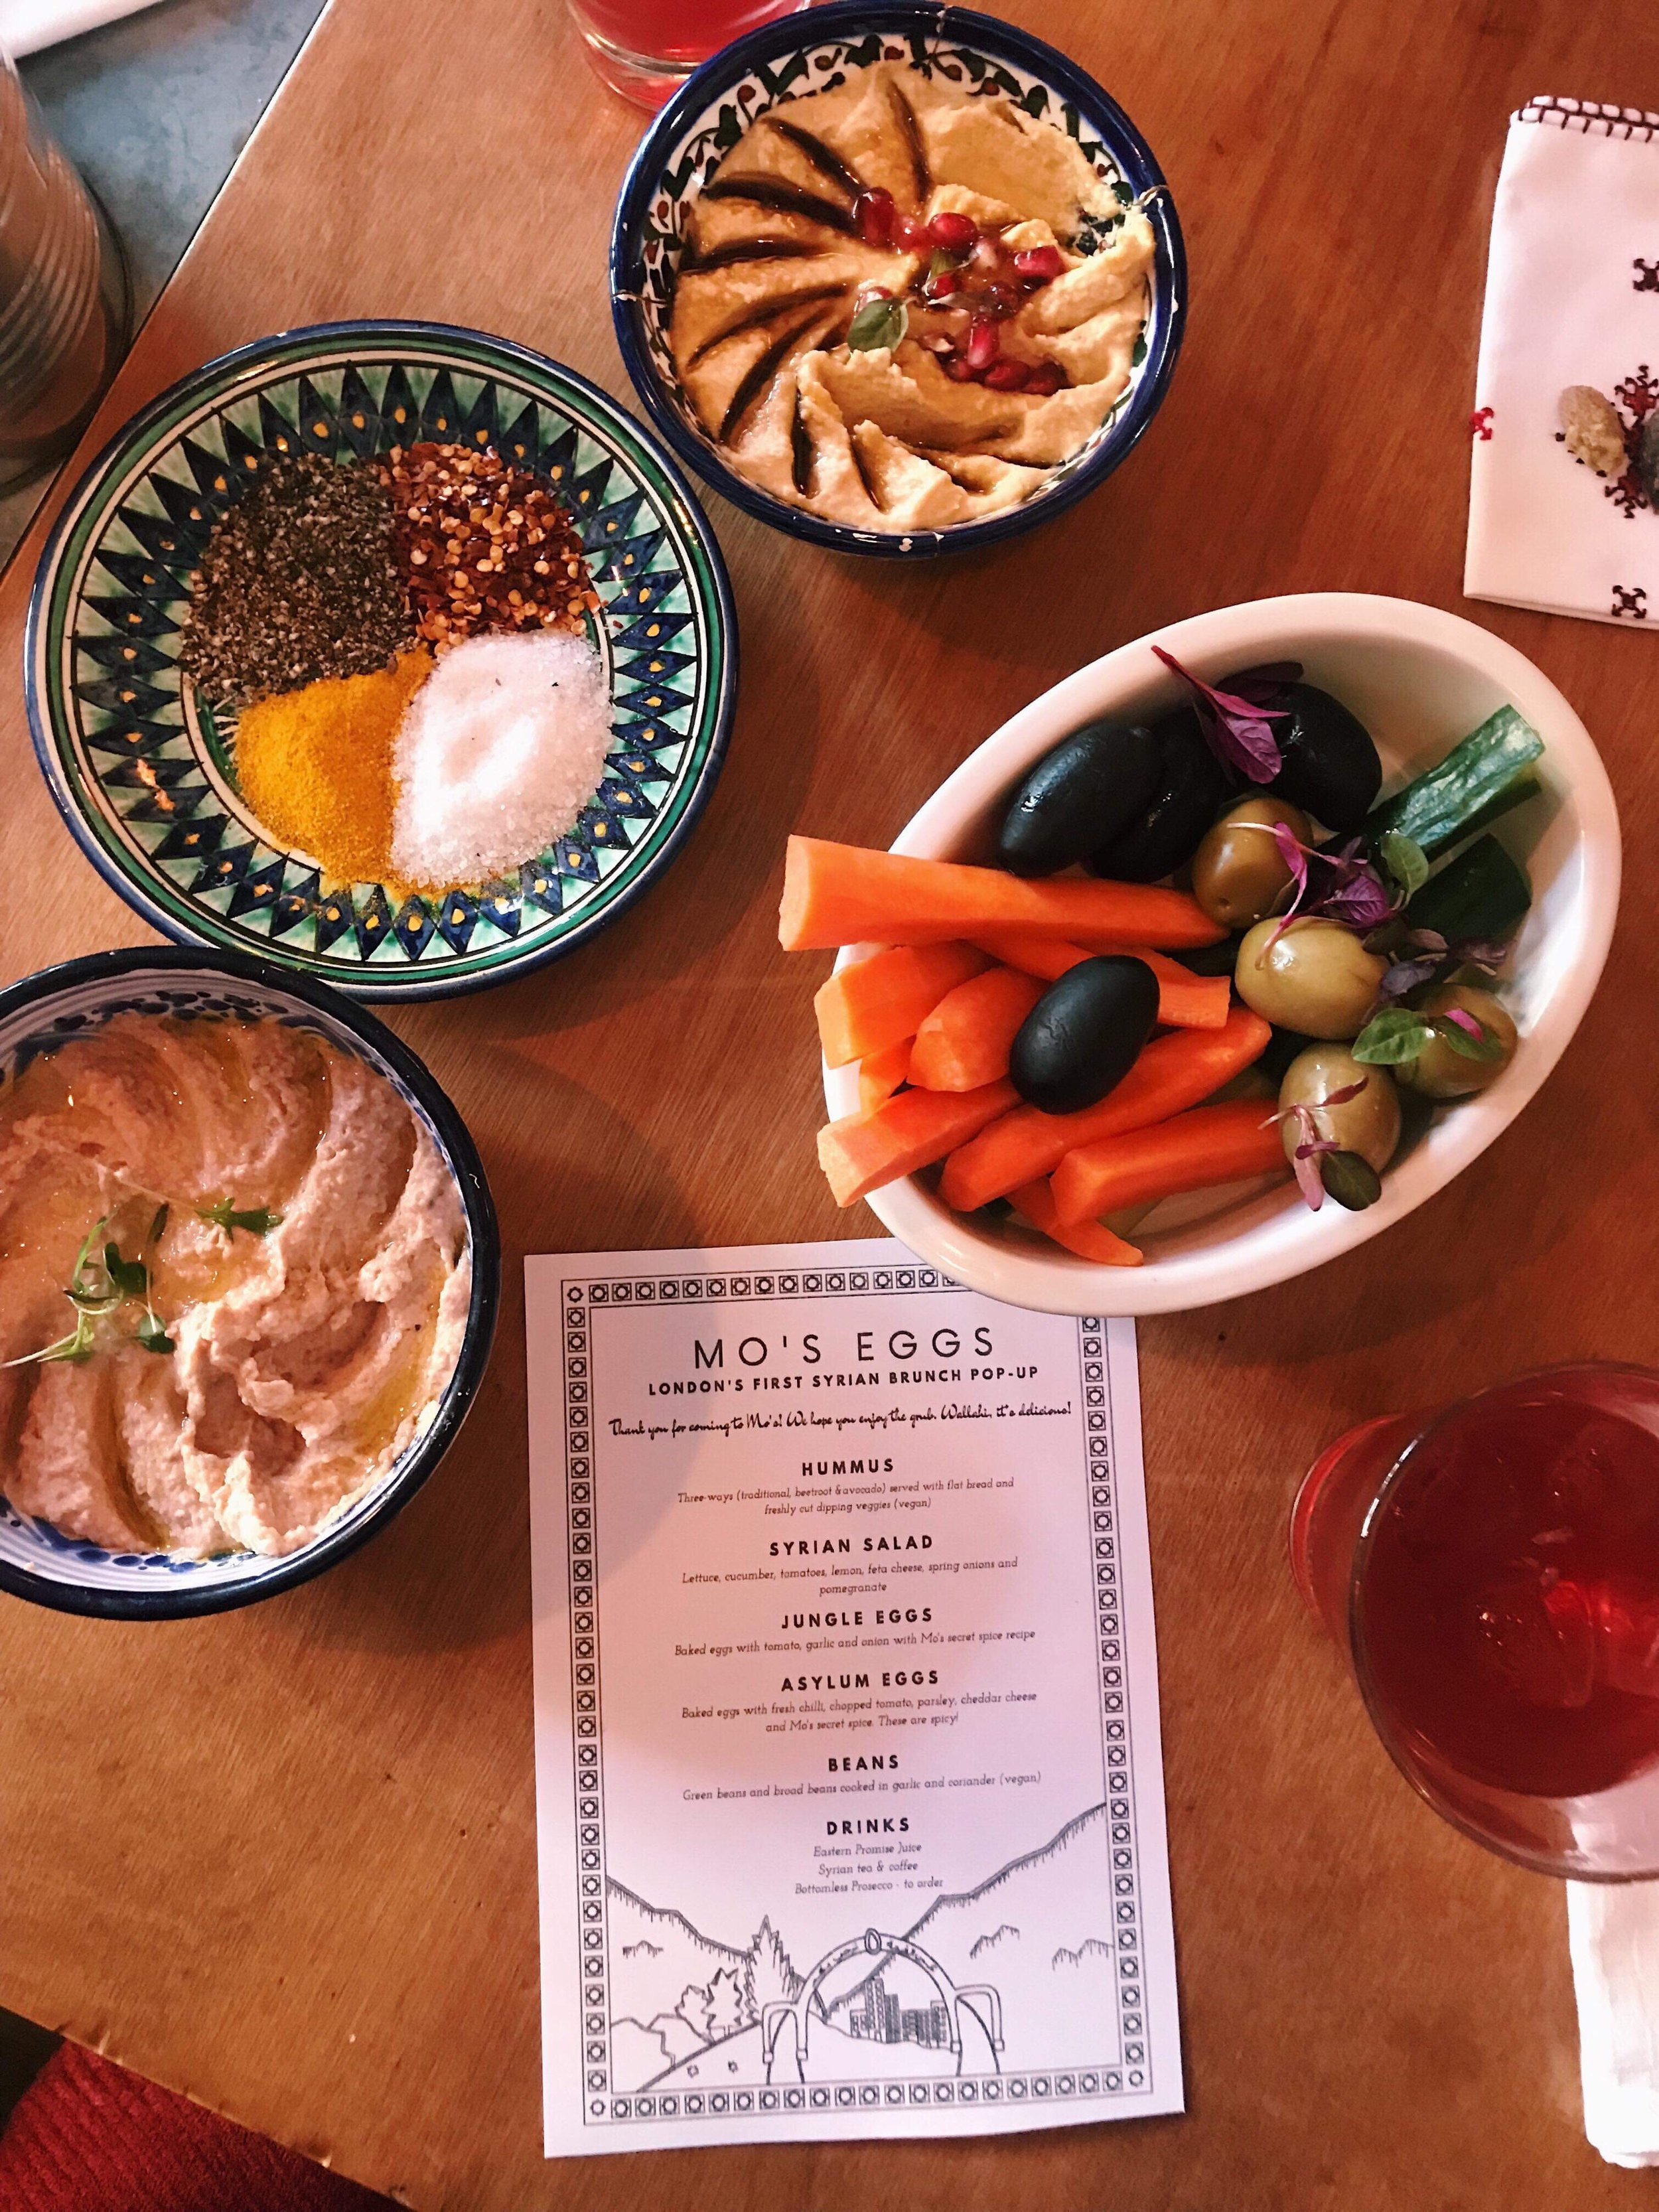 Brunch at Mo's Eggs starts with mezze including three types of hummus. Photo by Susan Davis.